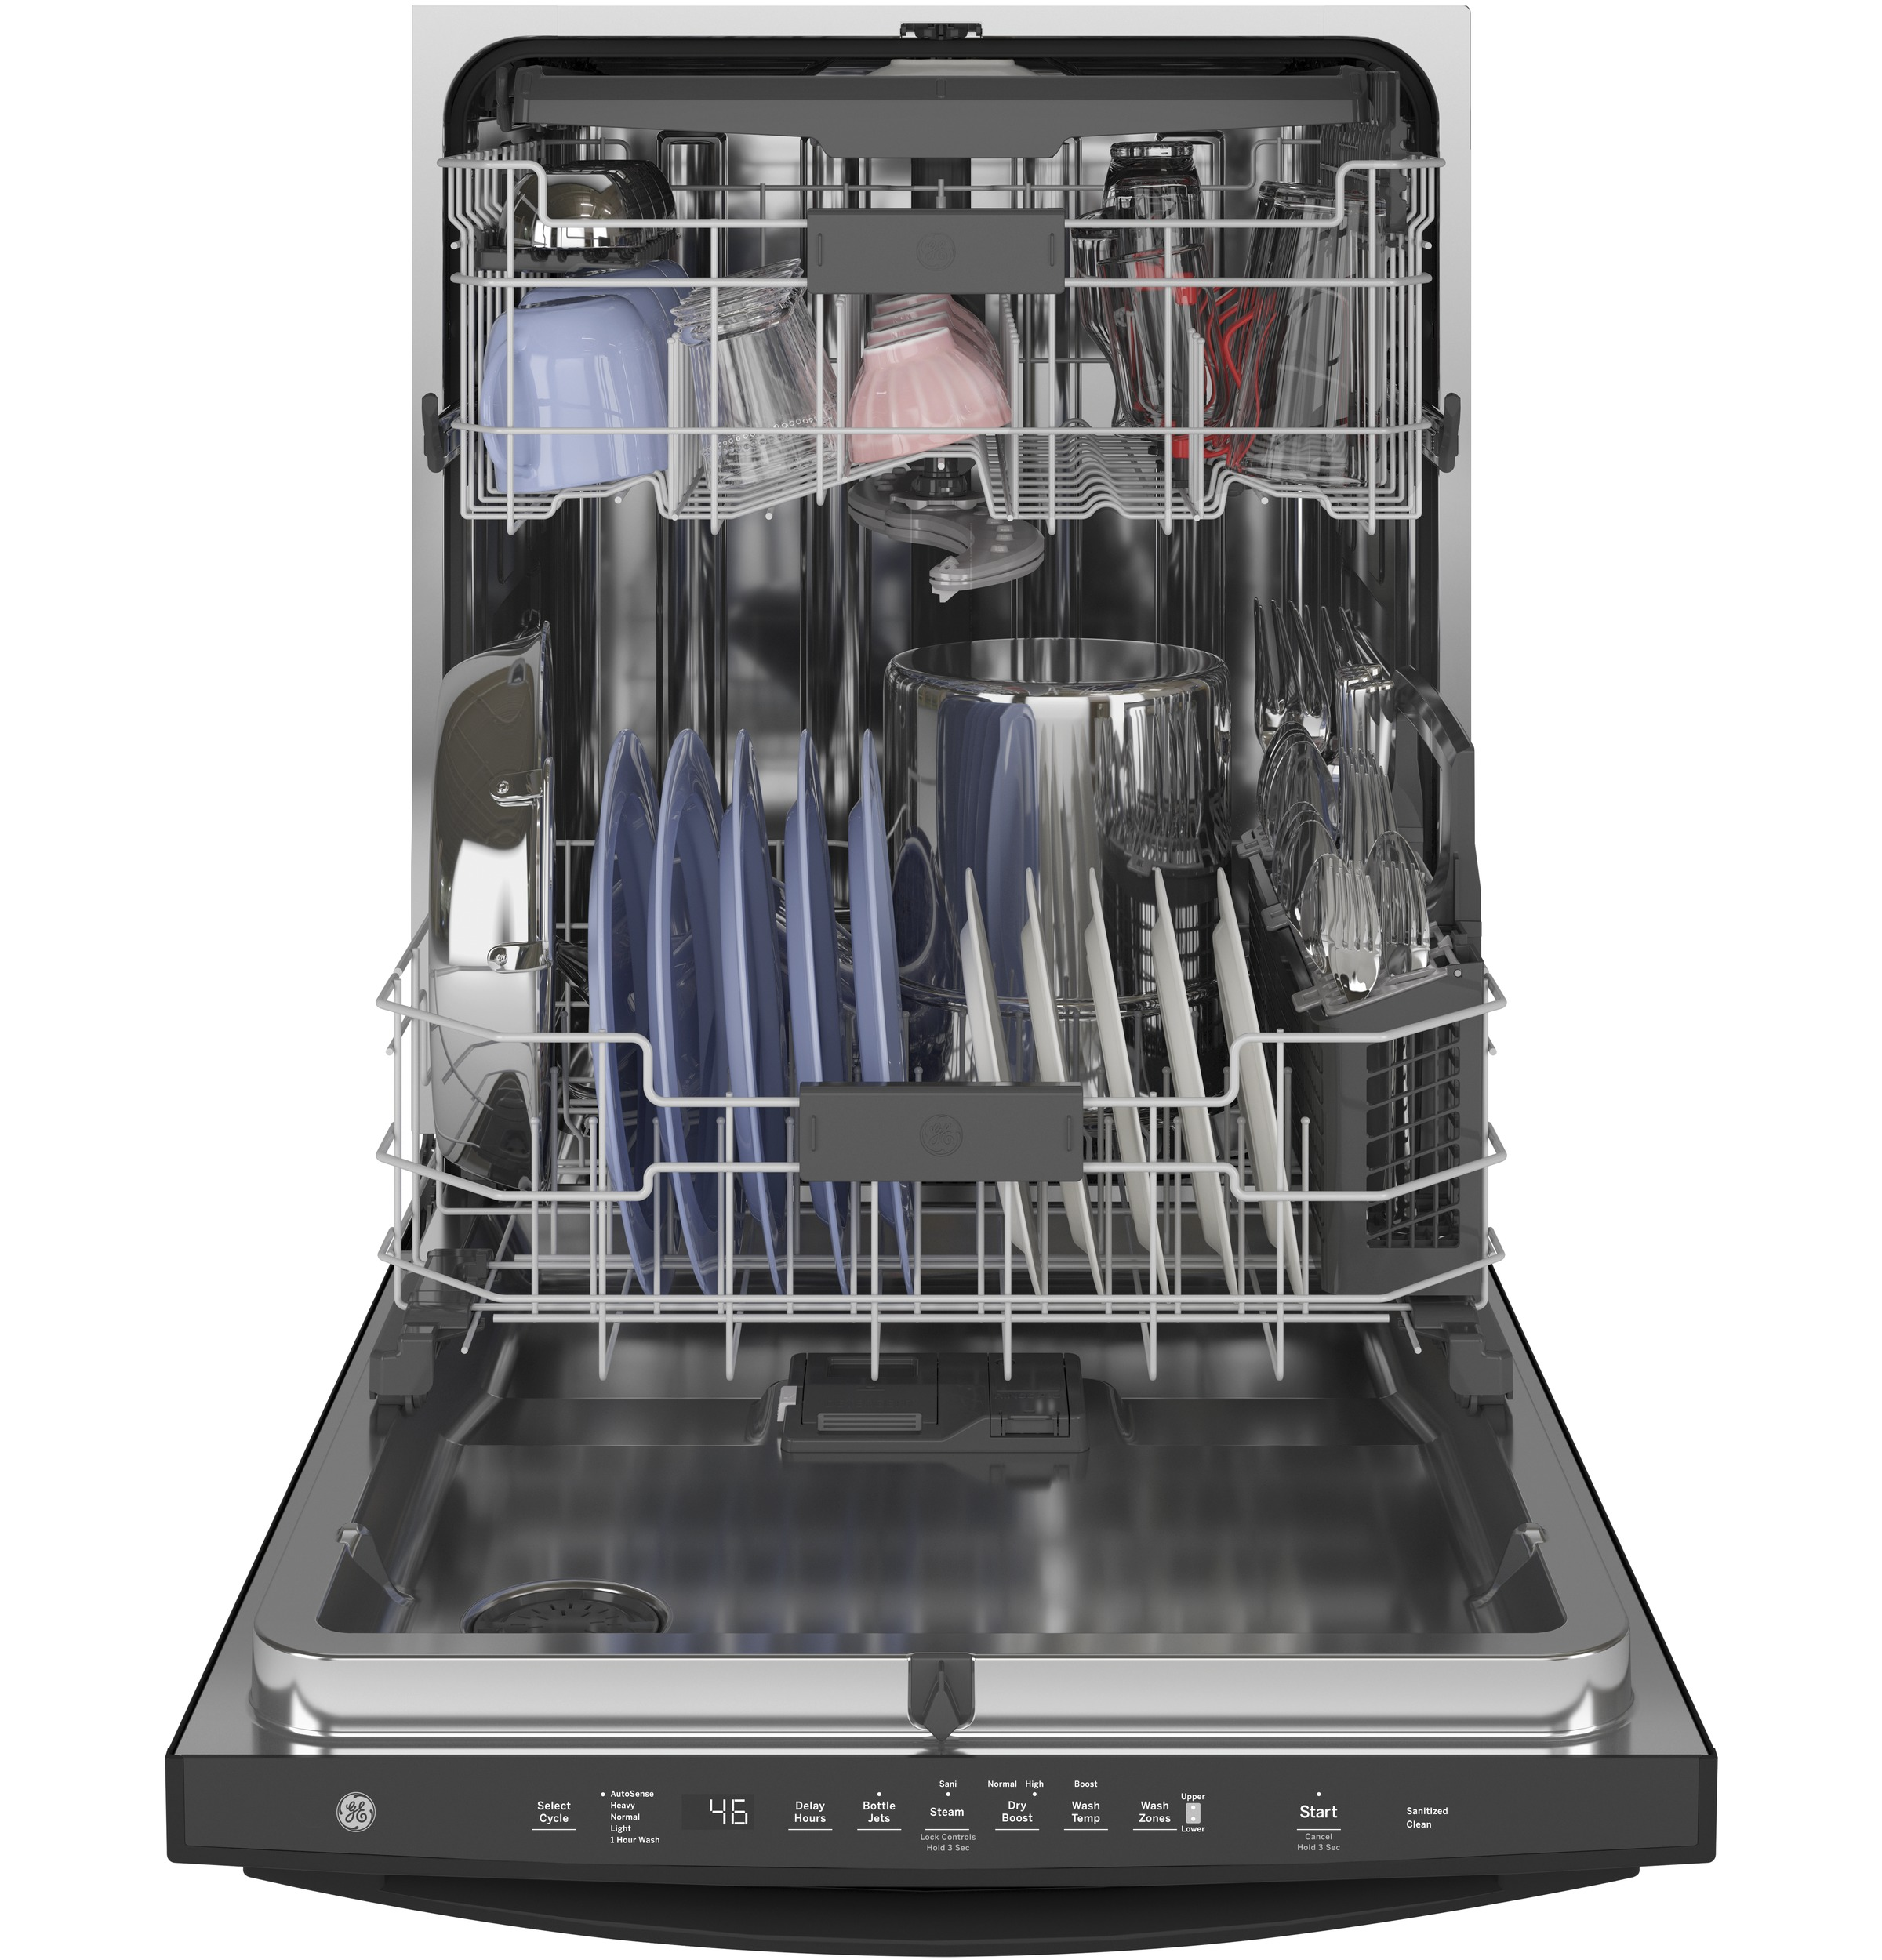 Model: GDT665SGNBB | GE GE® Top Control with Stainless Steel Interior Dishwasher with Sanitize Cycle & Dry Boost with Fan Assist